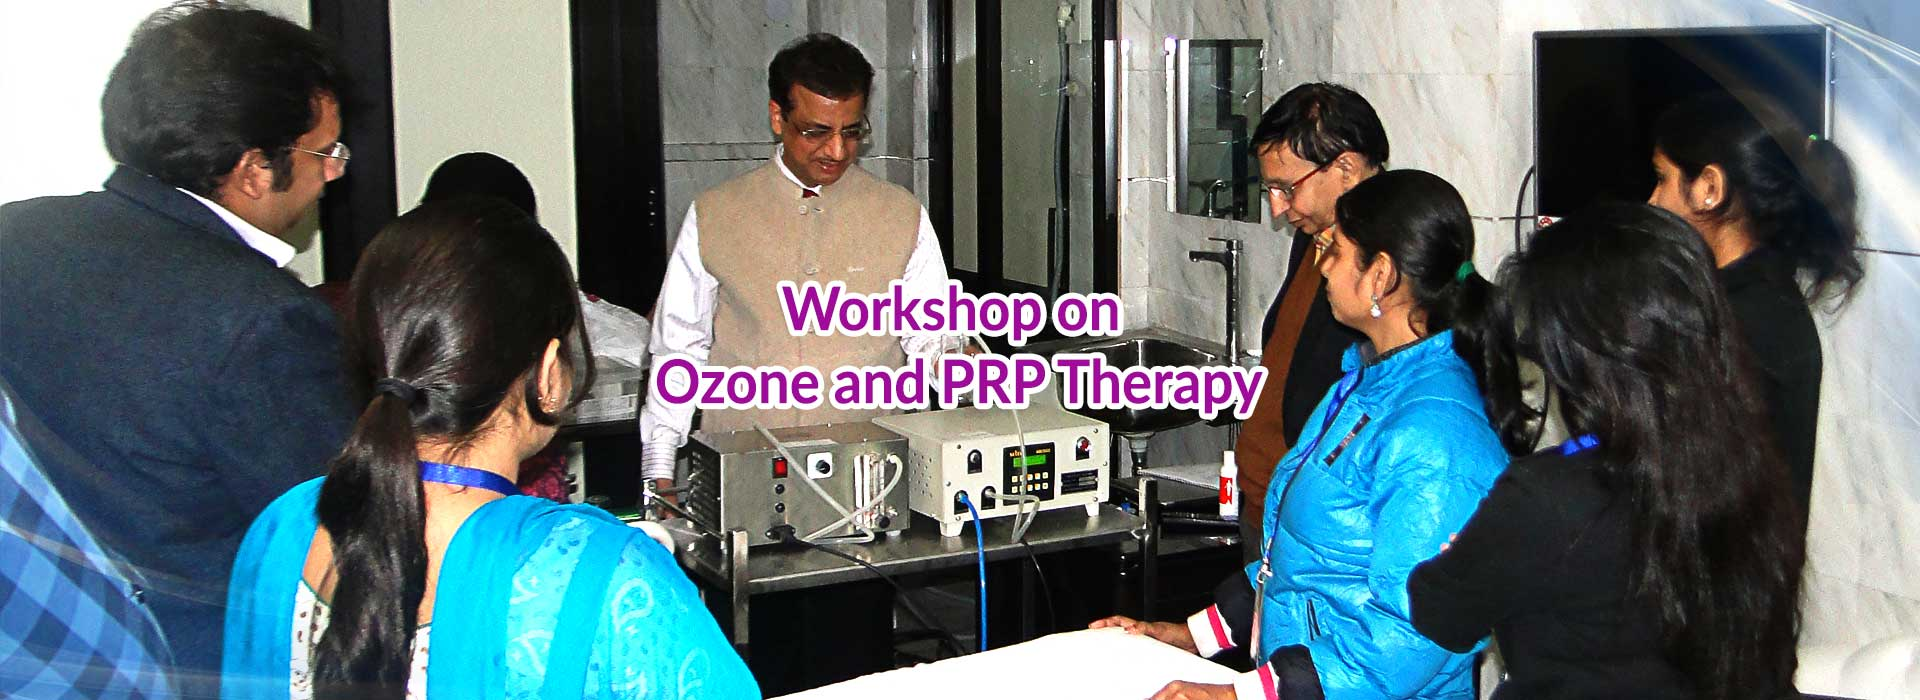 Spineorthopain: Ozone Therapy Workshop in India, Delhi